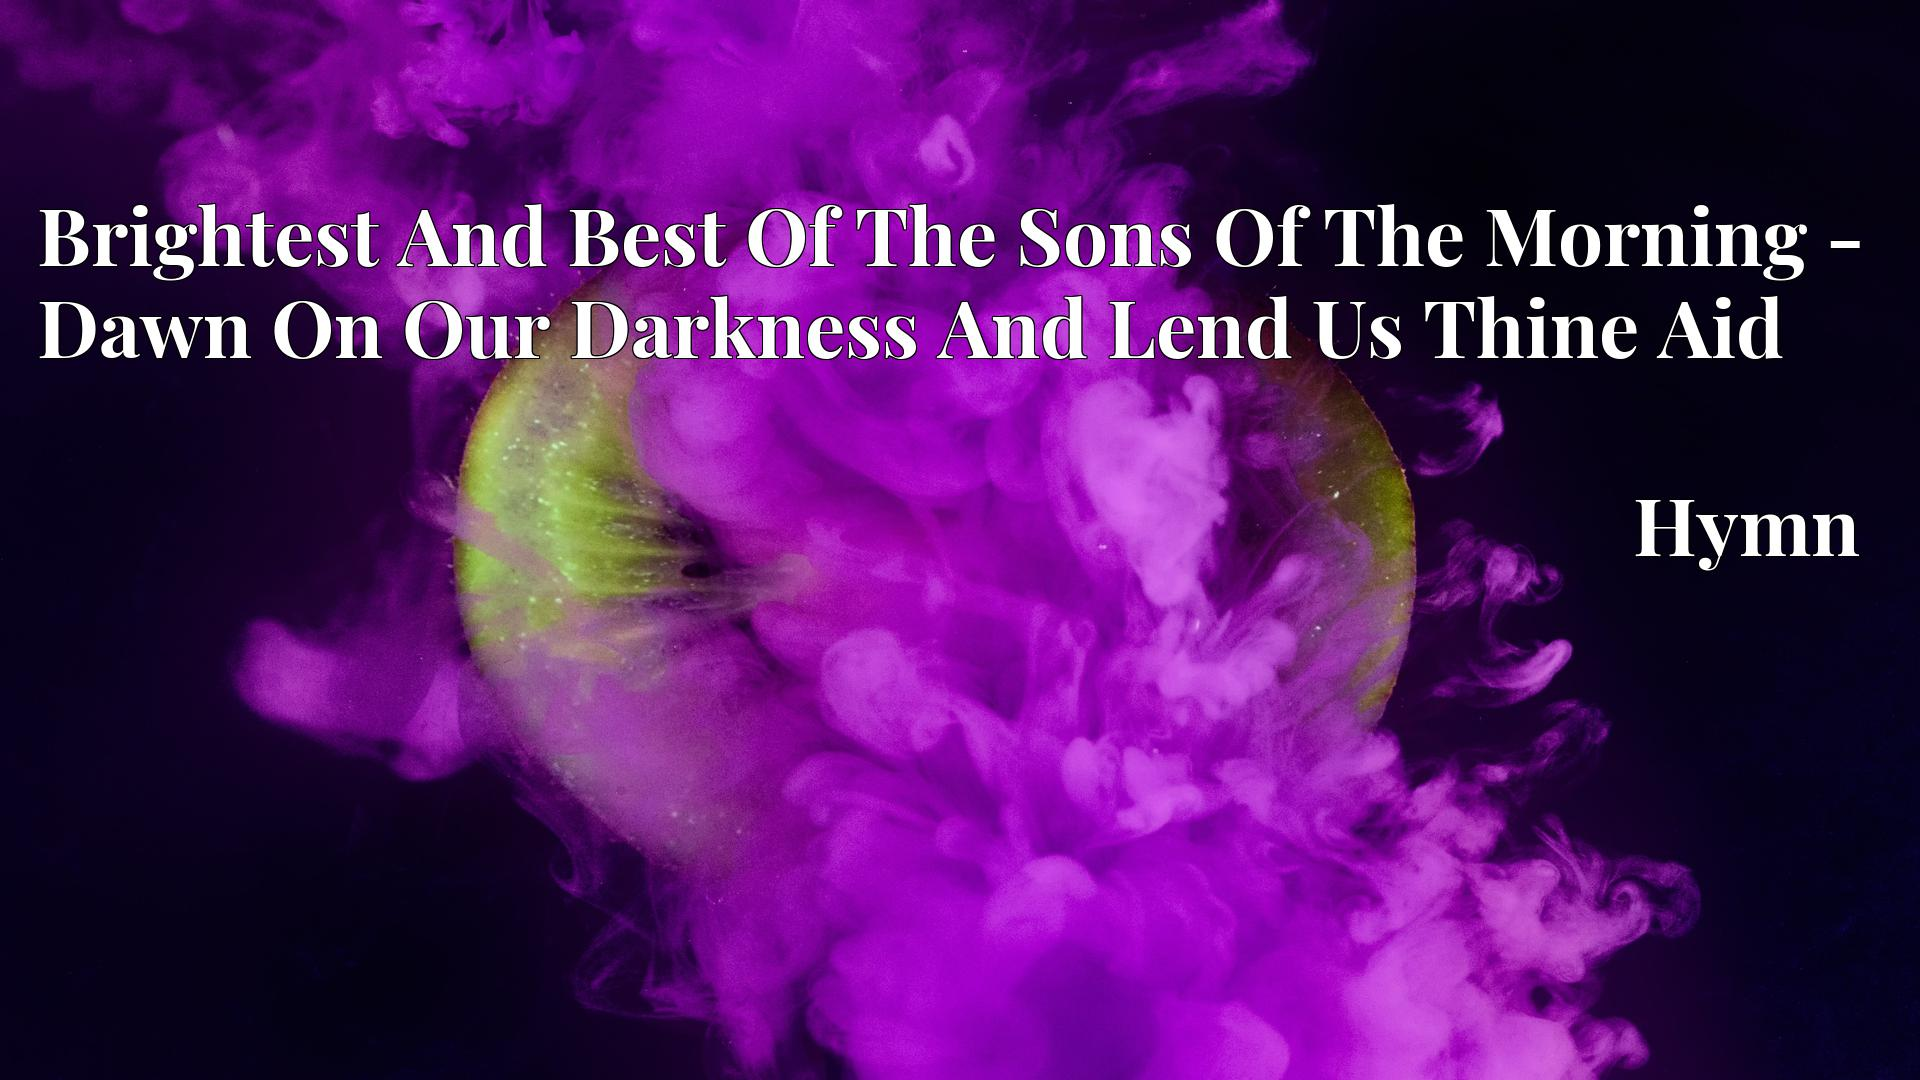 Brightest And Best Of The Sons Of The Morning - Dawn On Our Darkness And Lend Us Thine Aid Hymn